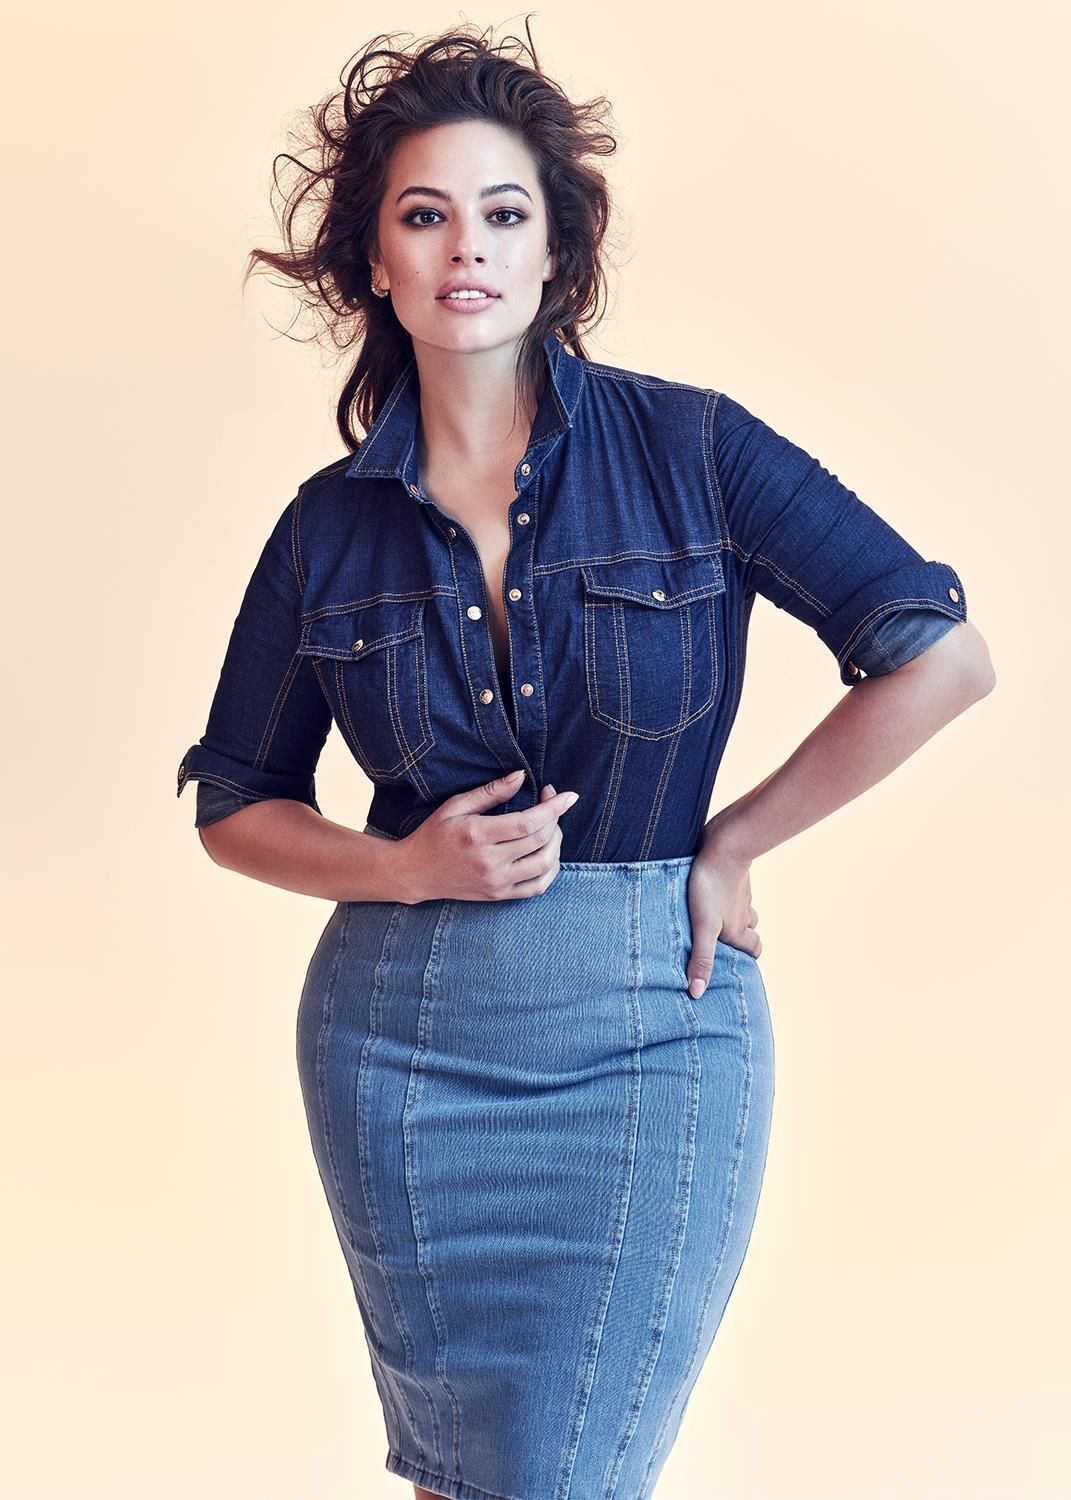 Looking for luxury plus size fashion  What about high end plus size denim   Well c6aee9129